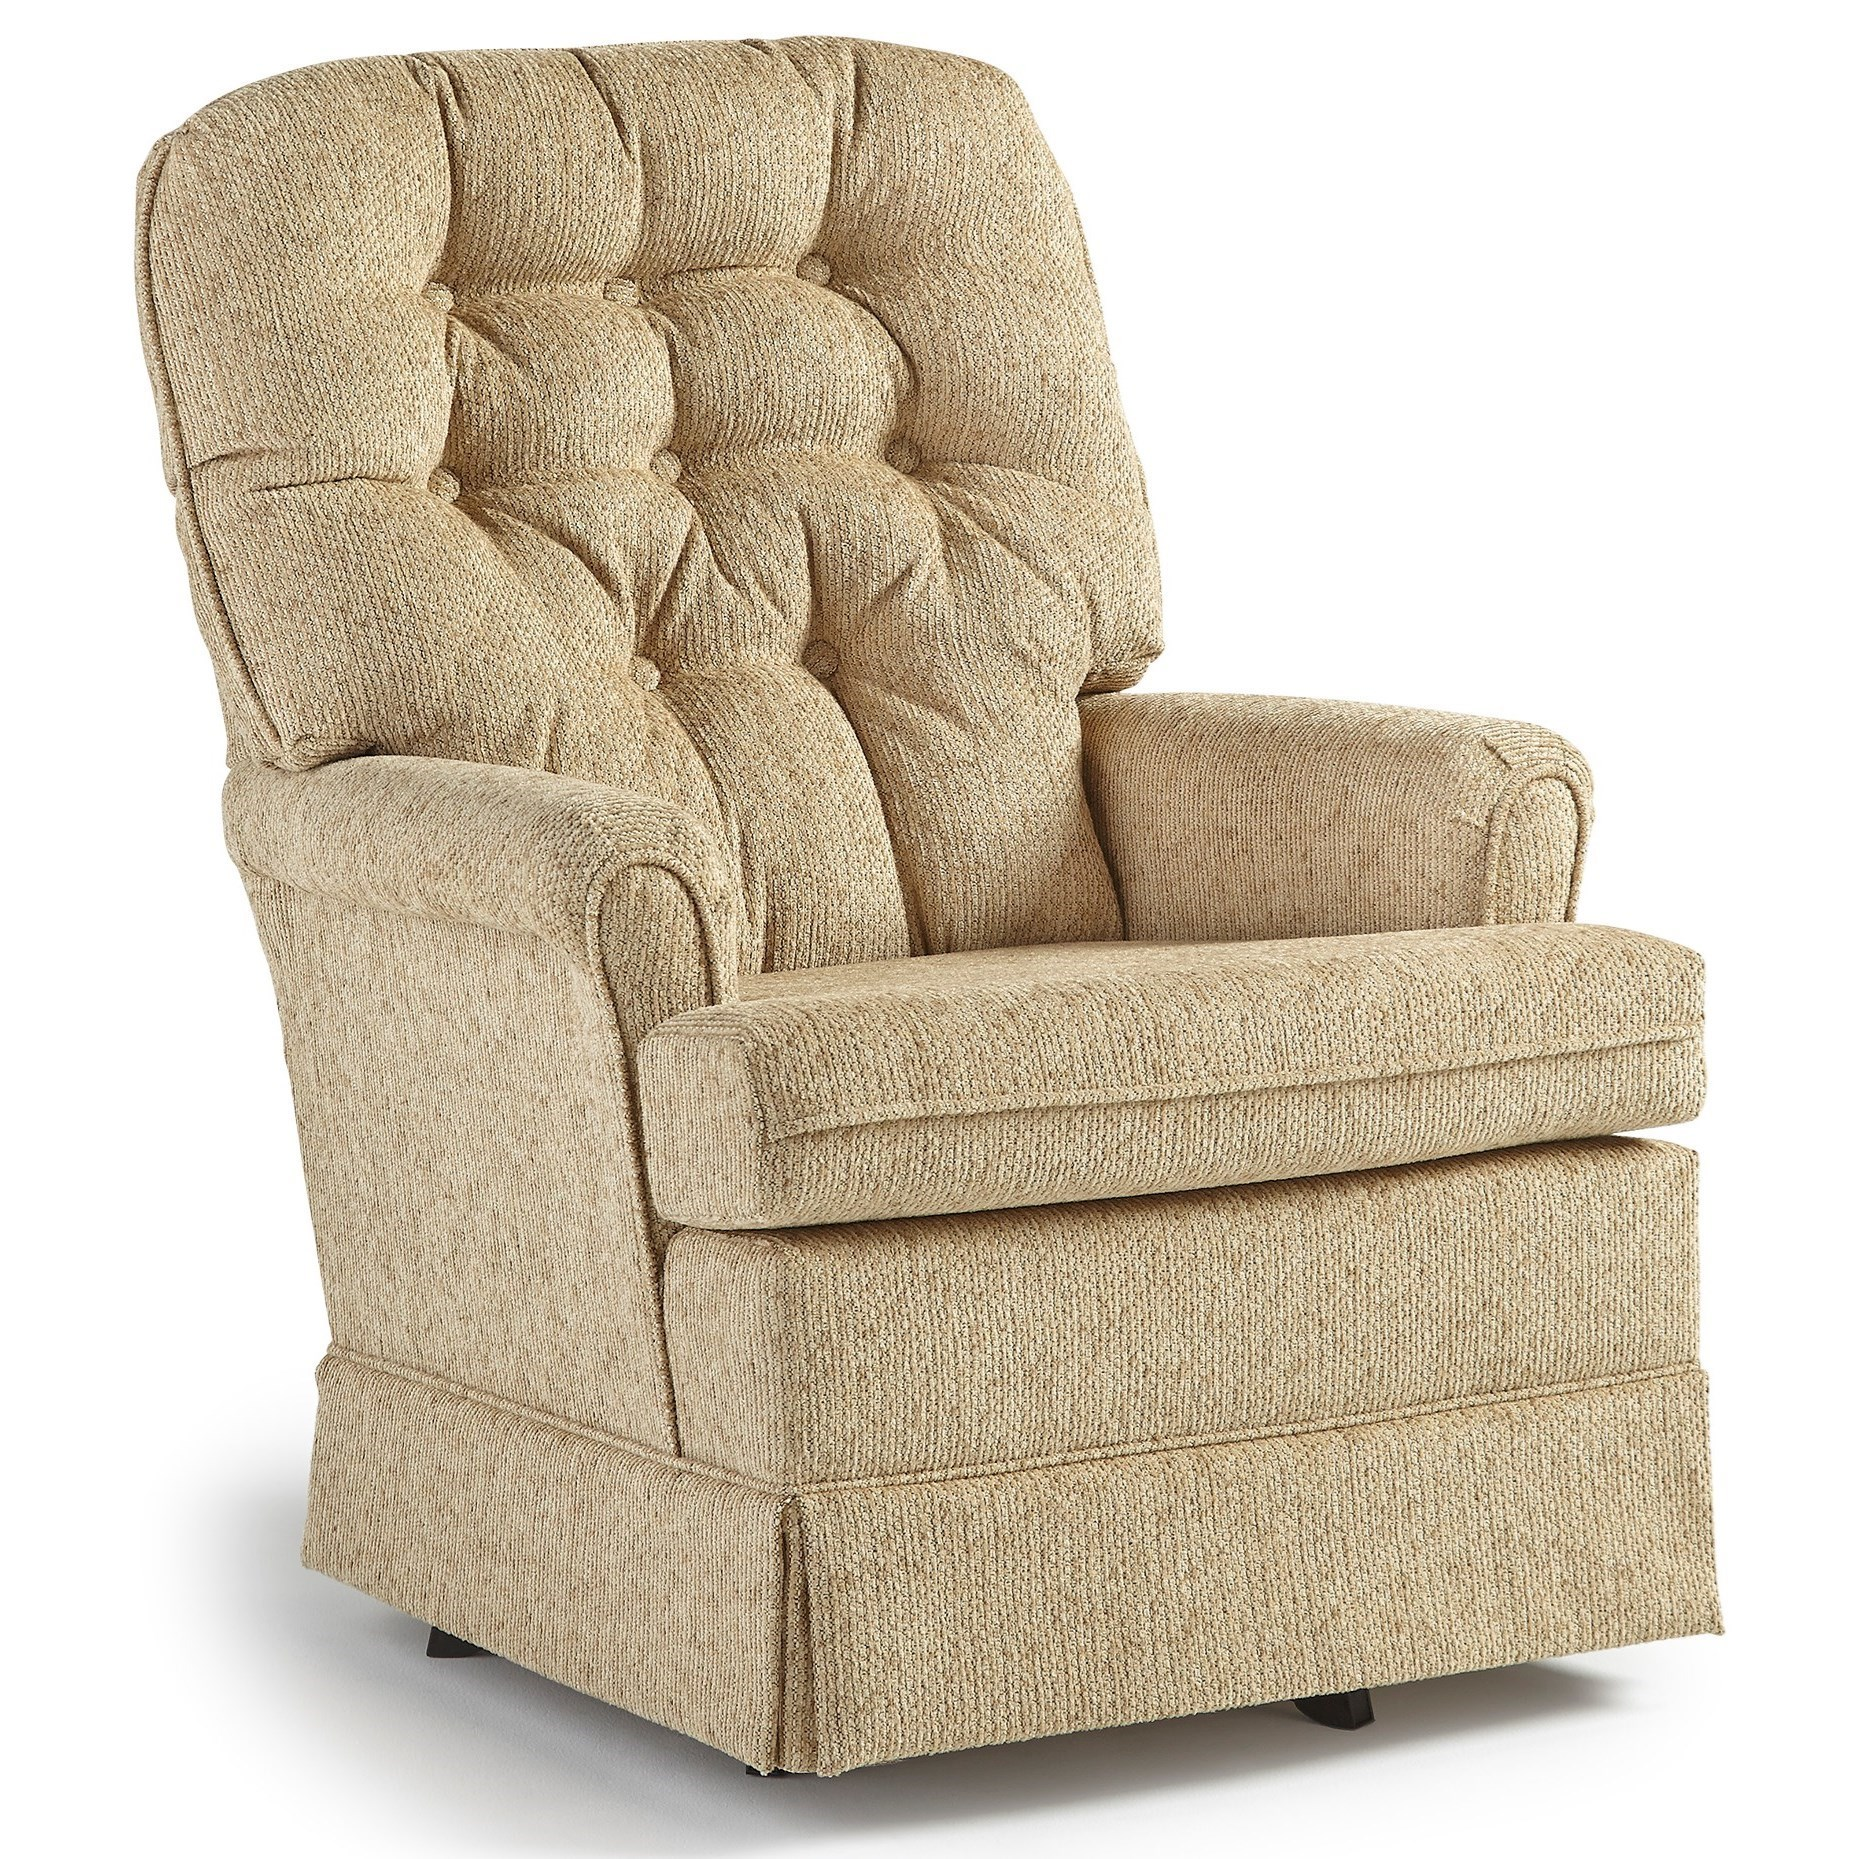 Best Home Furnishings Accent ChairsJoplin Swivel Rocker Chair